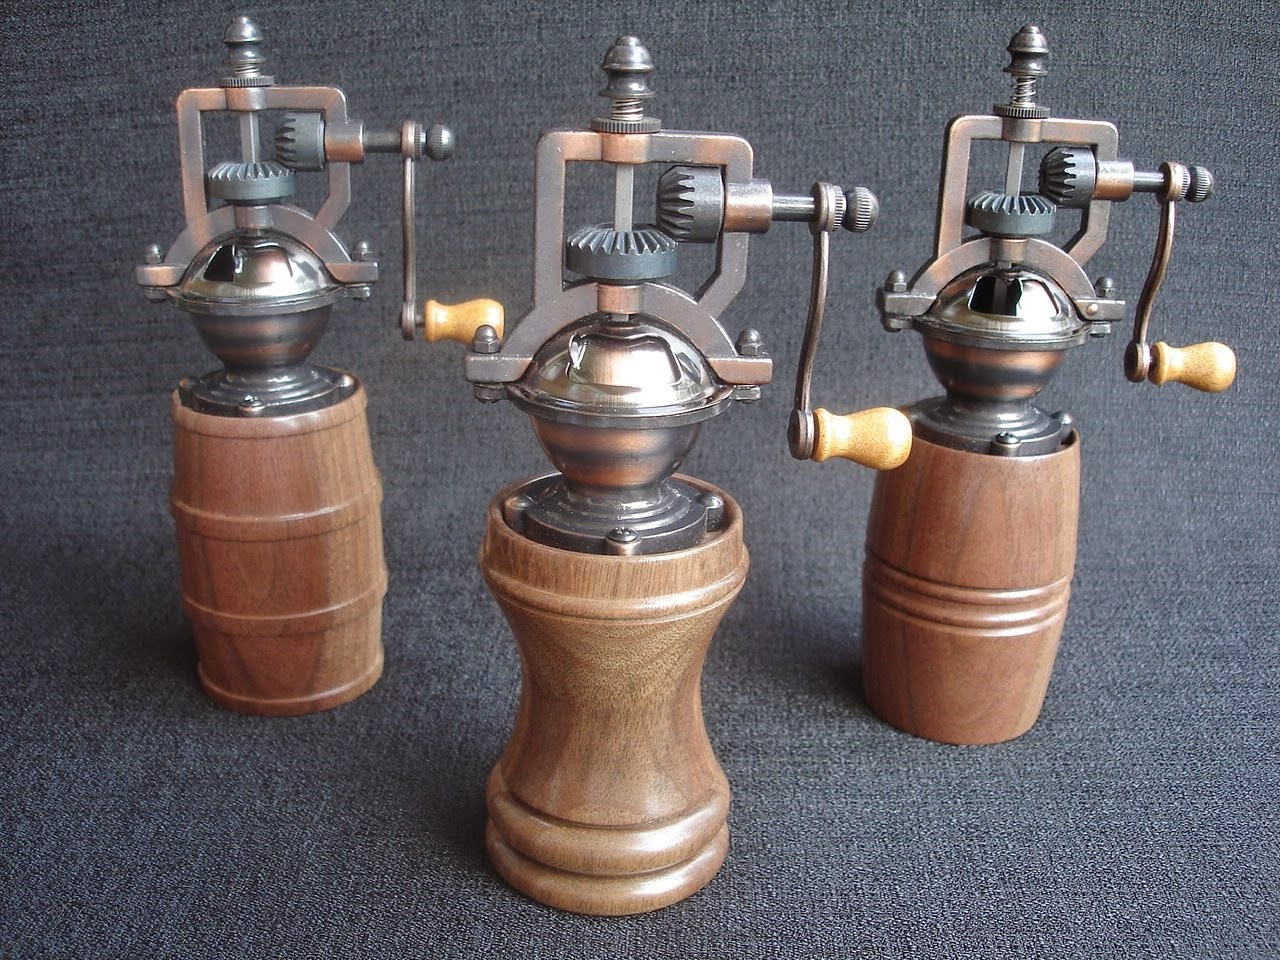 BwA Woodturning offers one of a kind, artistic and functional woodturnings. We specialize in...